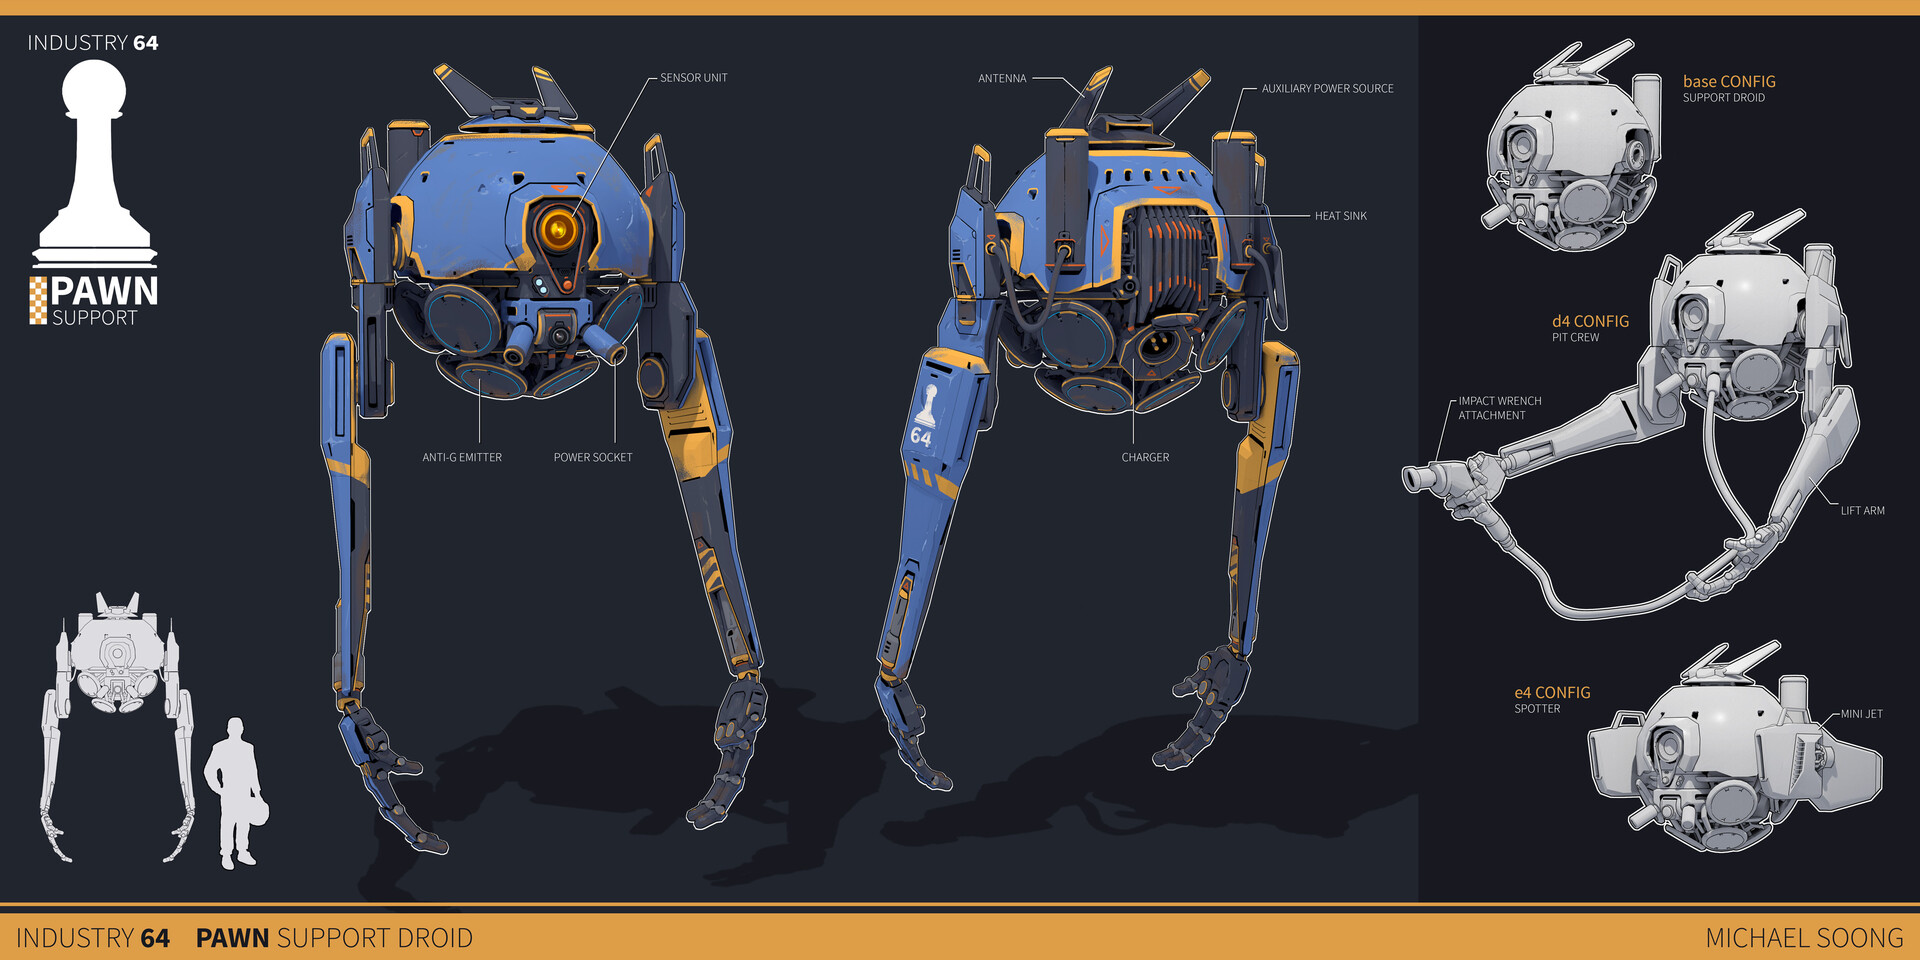 ArtStation - Industry 64: Pawn Support Droid, Michael Soong